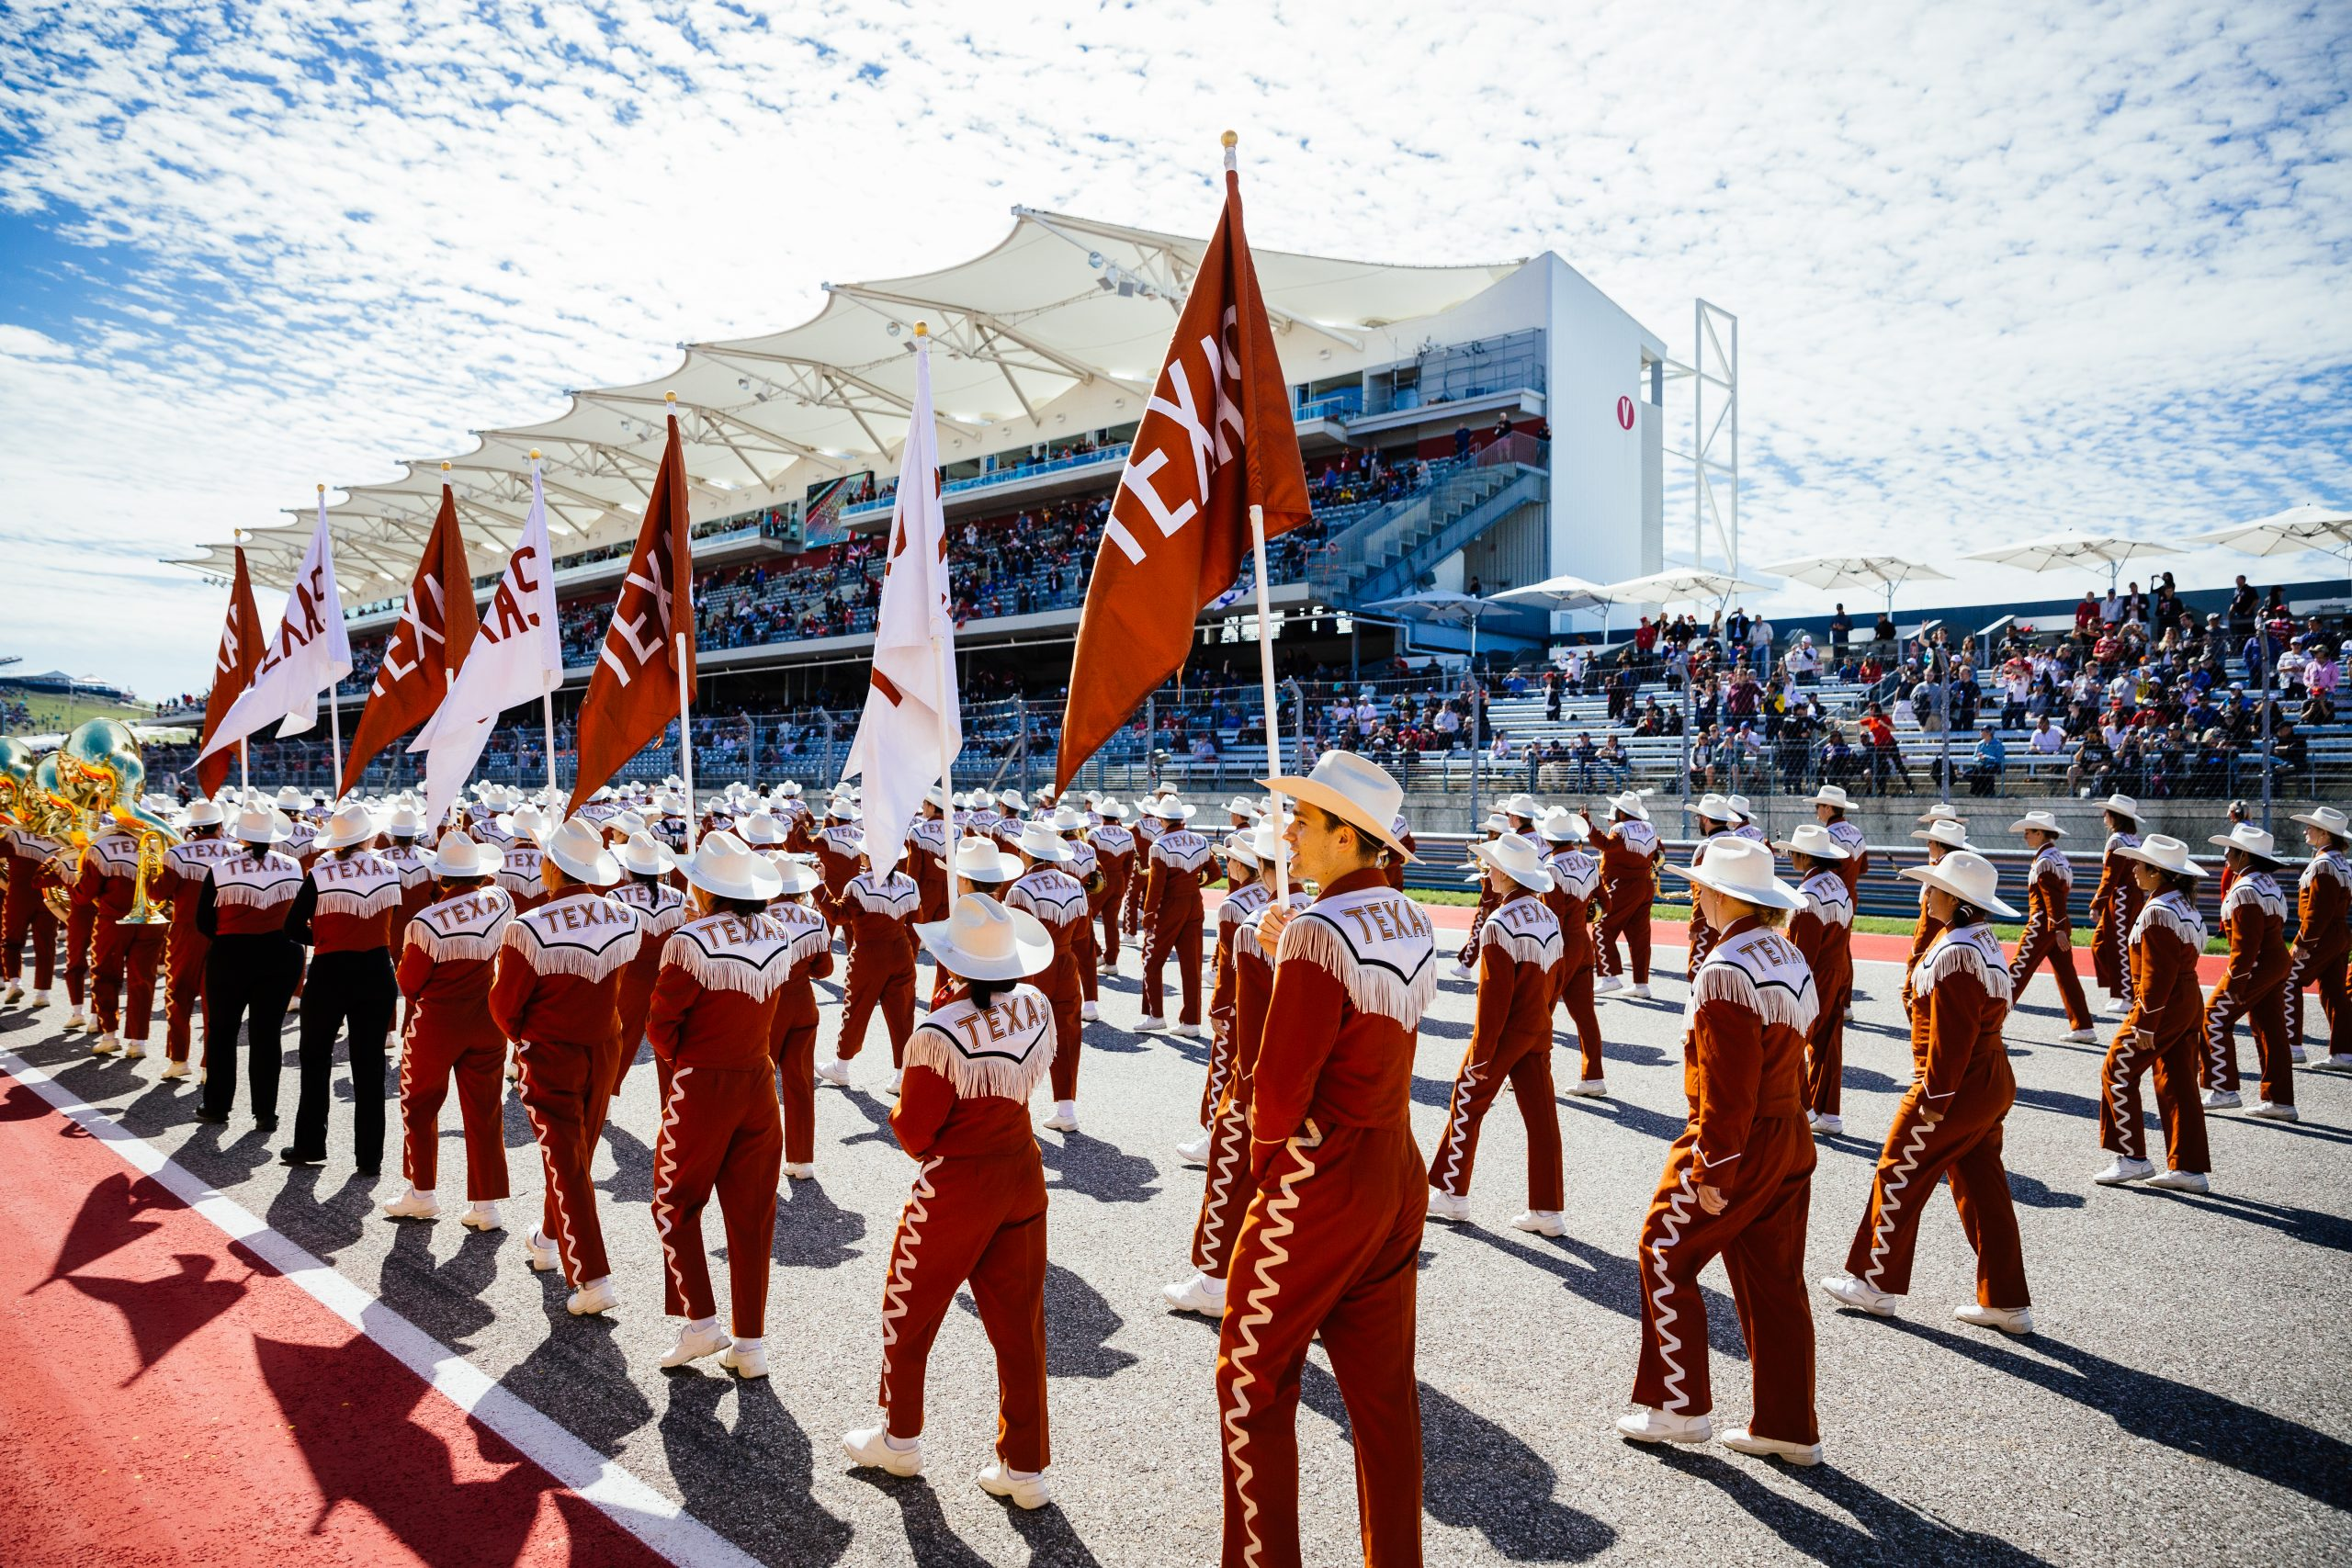 The University of Texas Longhorn Show Band performing on track prior to the race.